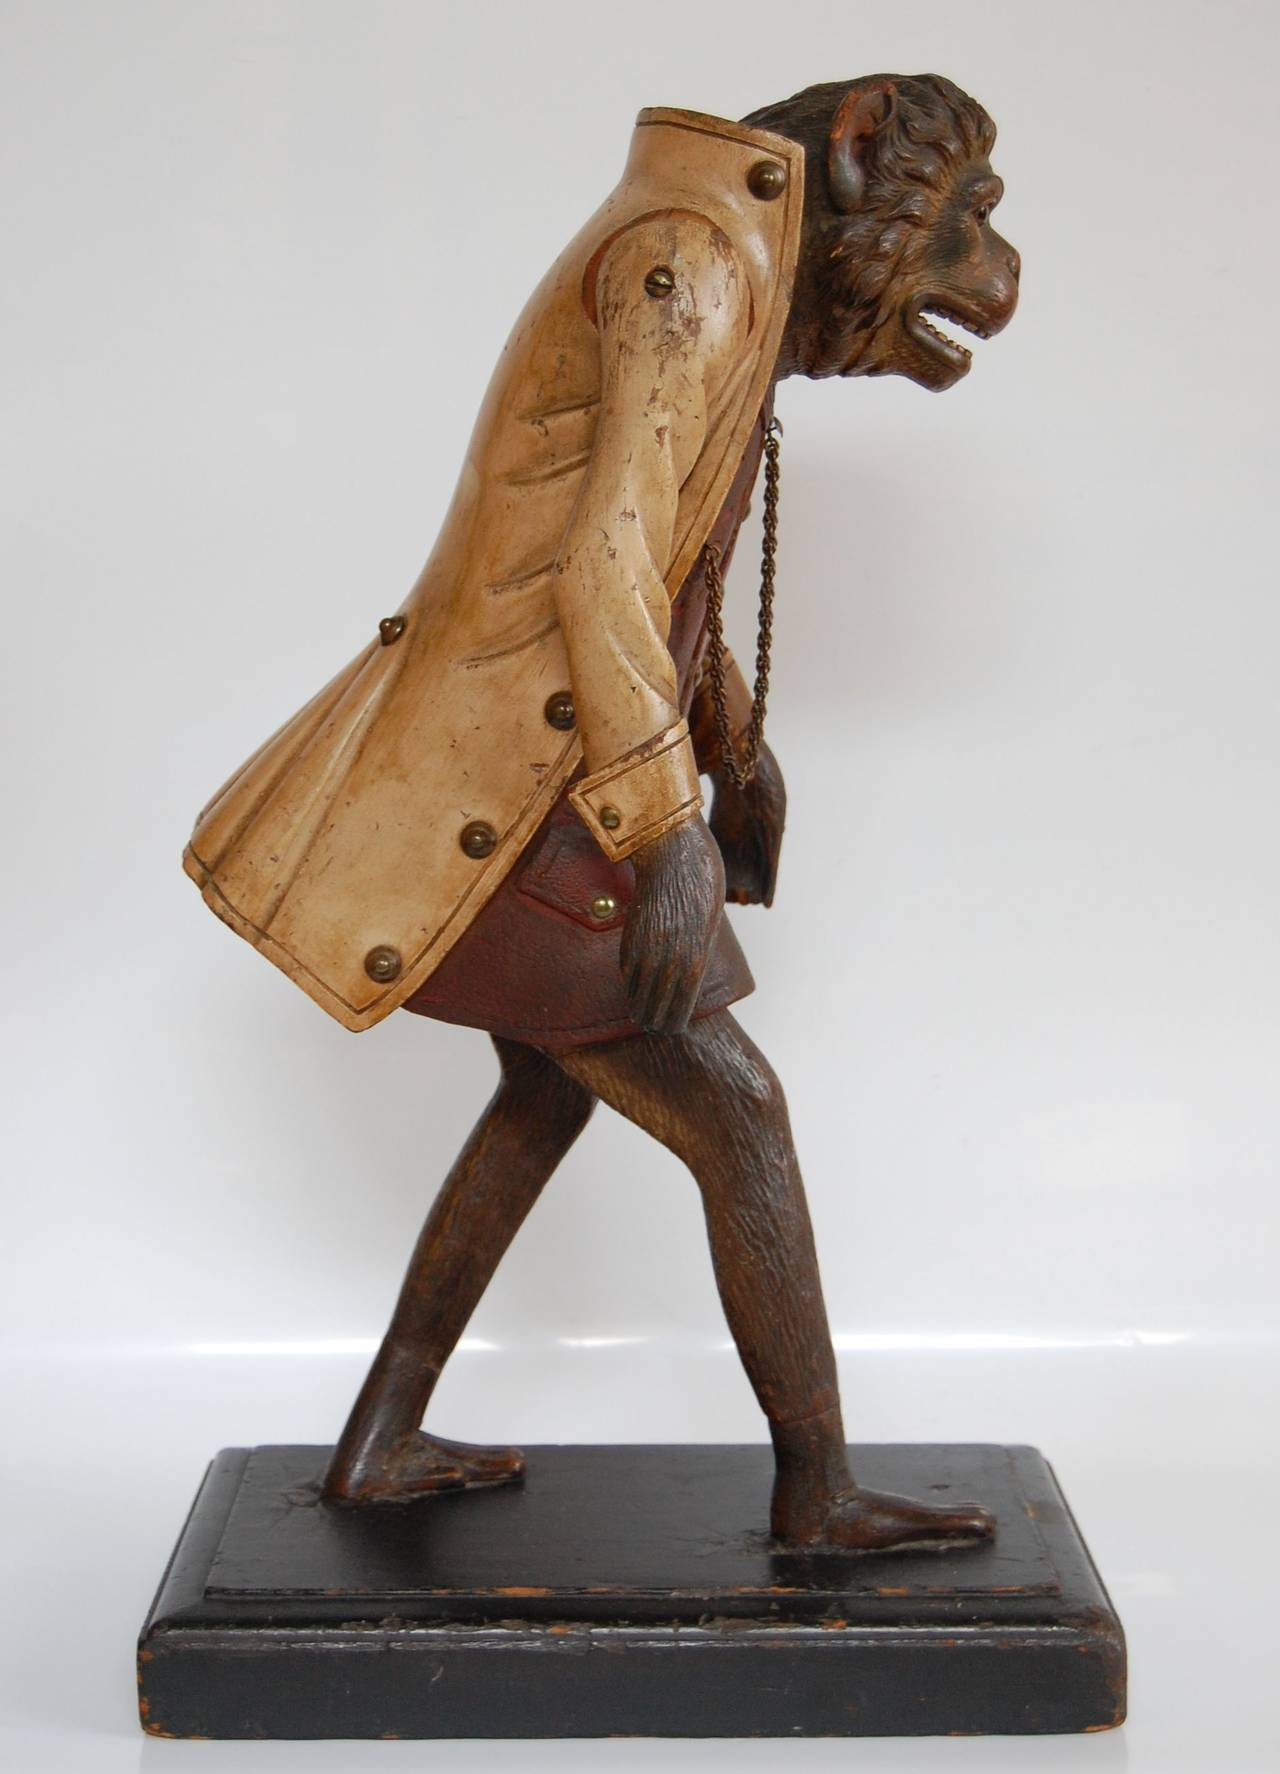 19th Century Carved Wooden Figure Of An Upright Walking